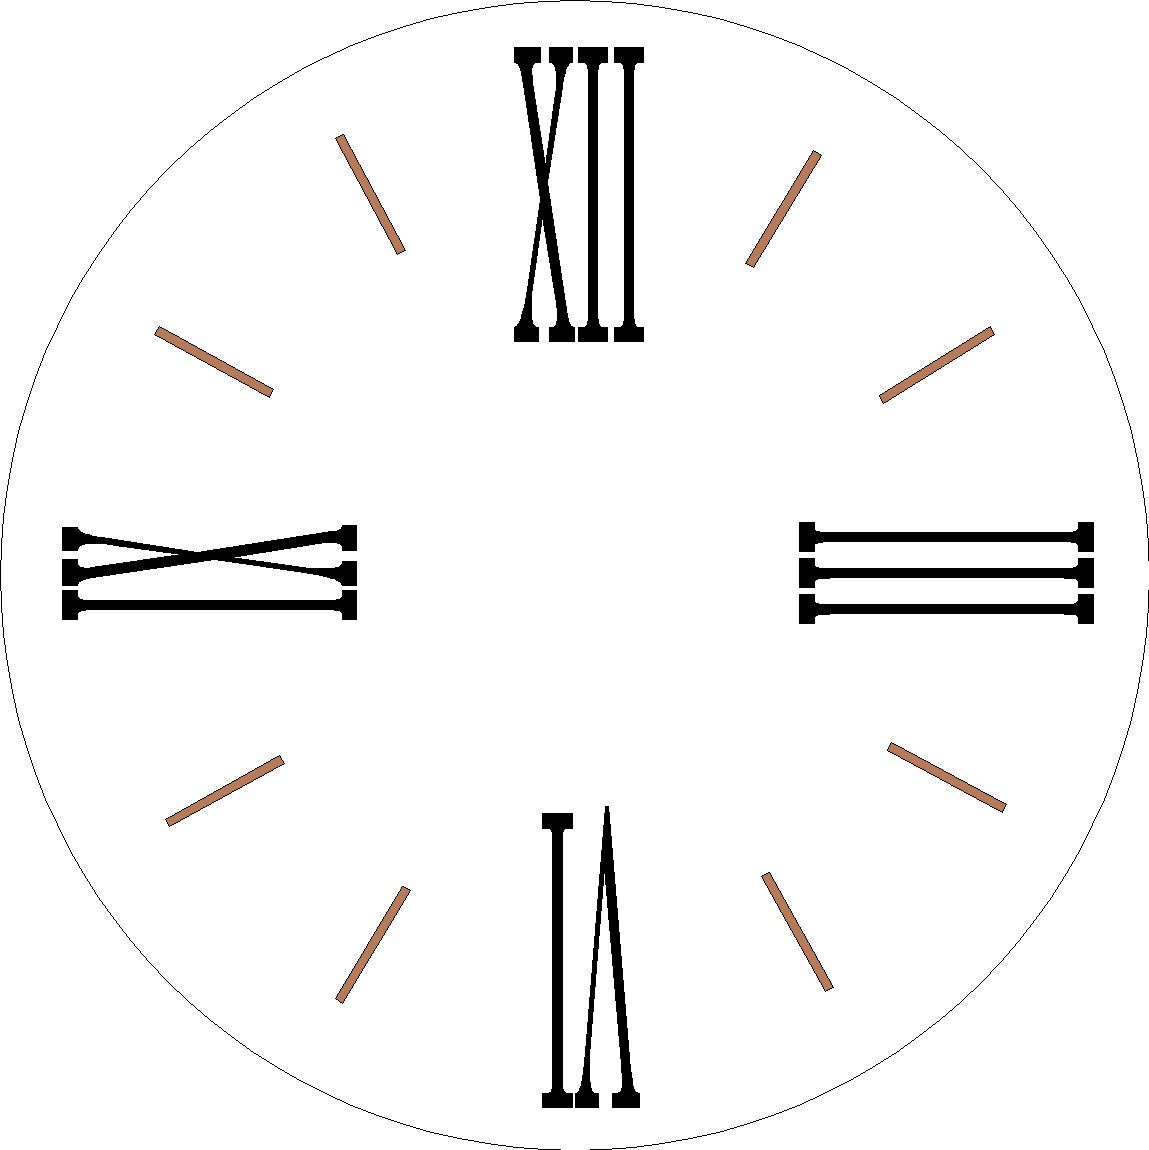 By Vinylexpress On Etsy Roman Numeral Stencil Or Decal Based On A 30 Round Clock Face Stencil